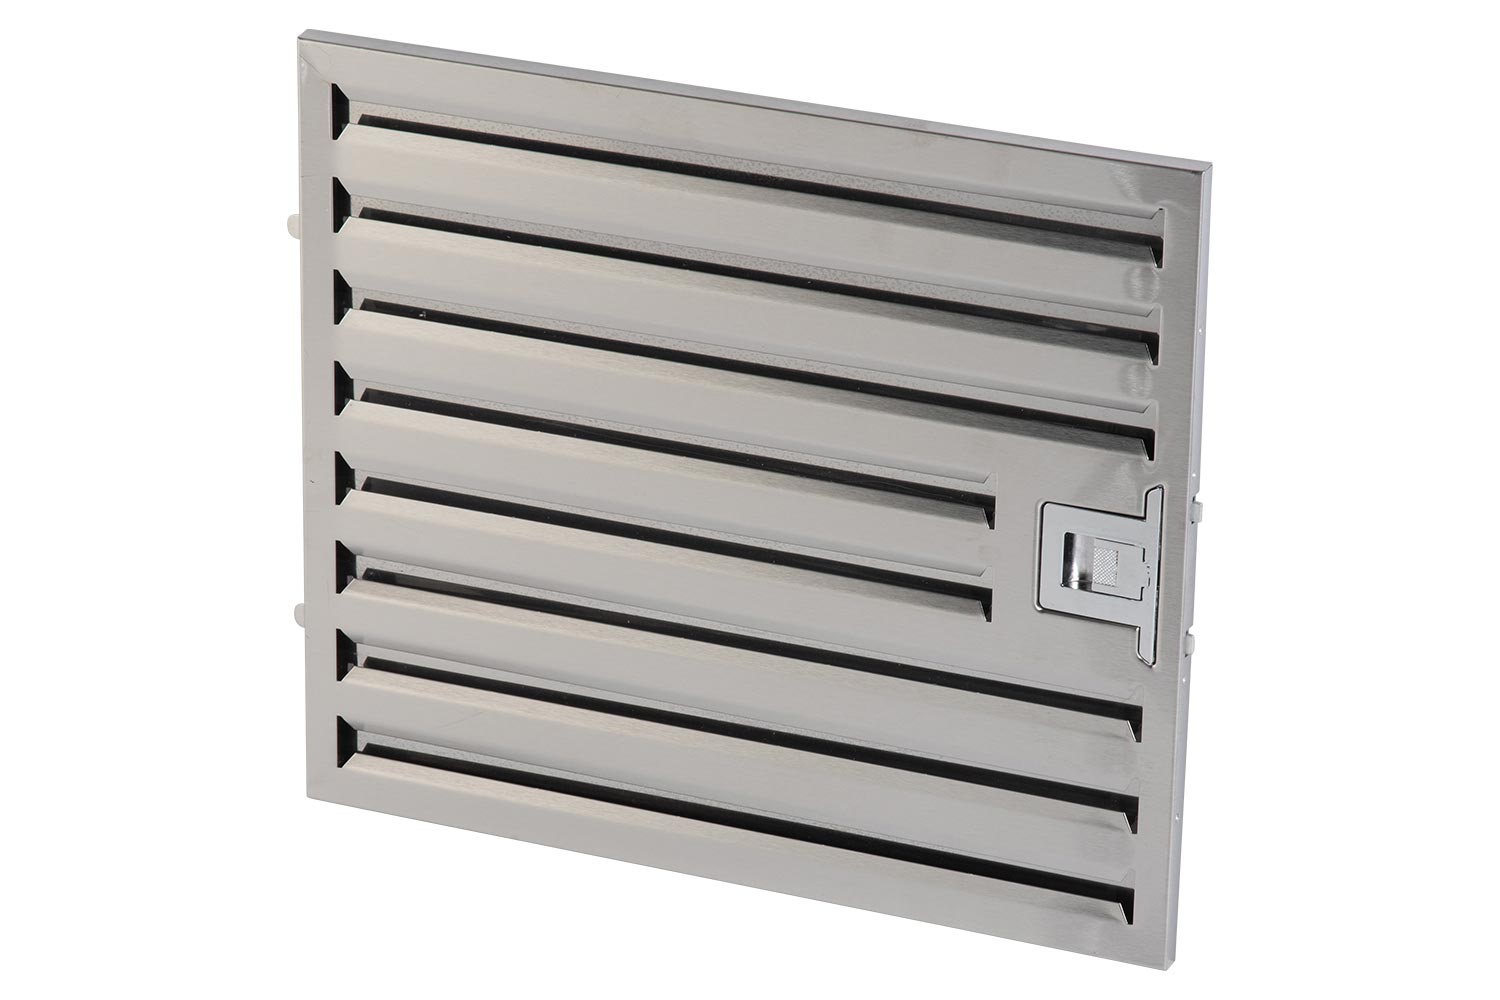 Baffle (Stainless Steel) for CLUM10 - AC0701FIL2049